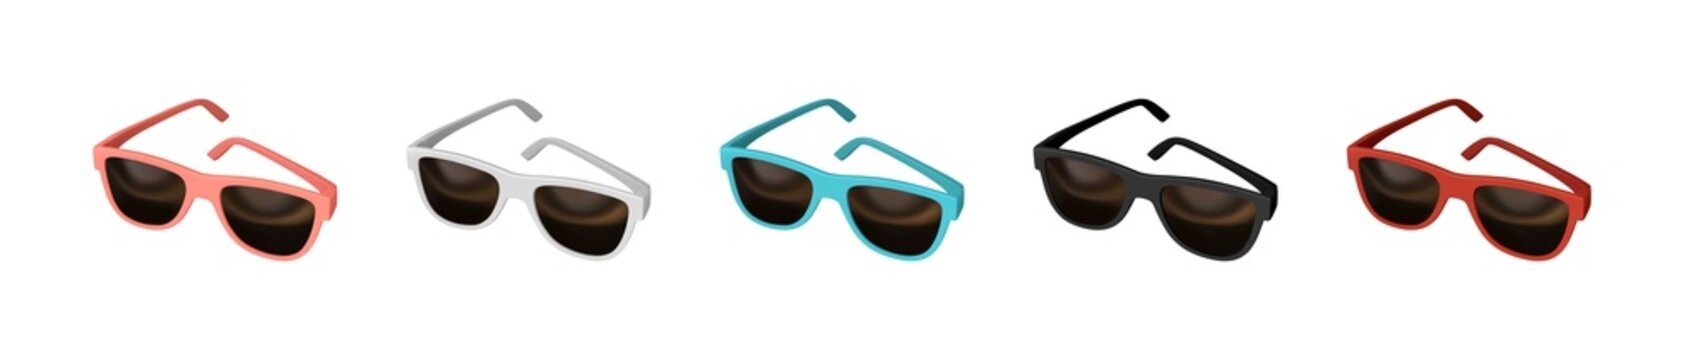 Realistic set of 3d fashion Sunglasses. Isolated on white background. Multicolored Glasses for men and women. Vector illustration.